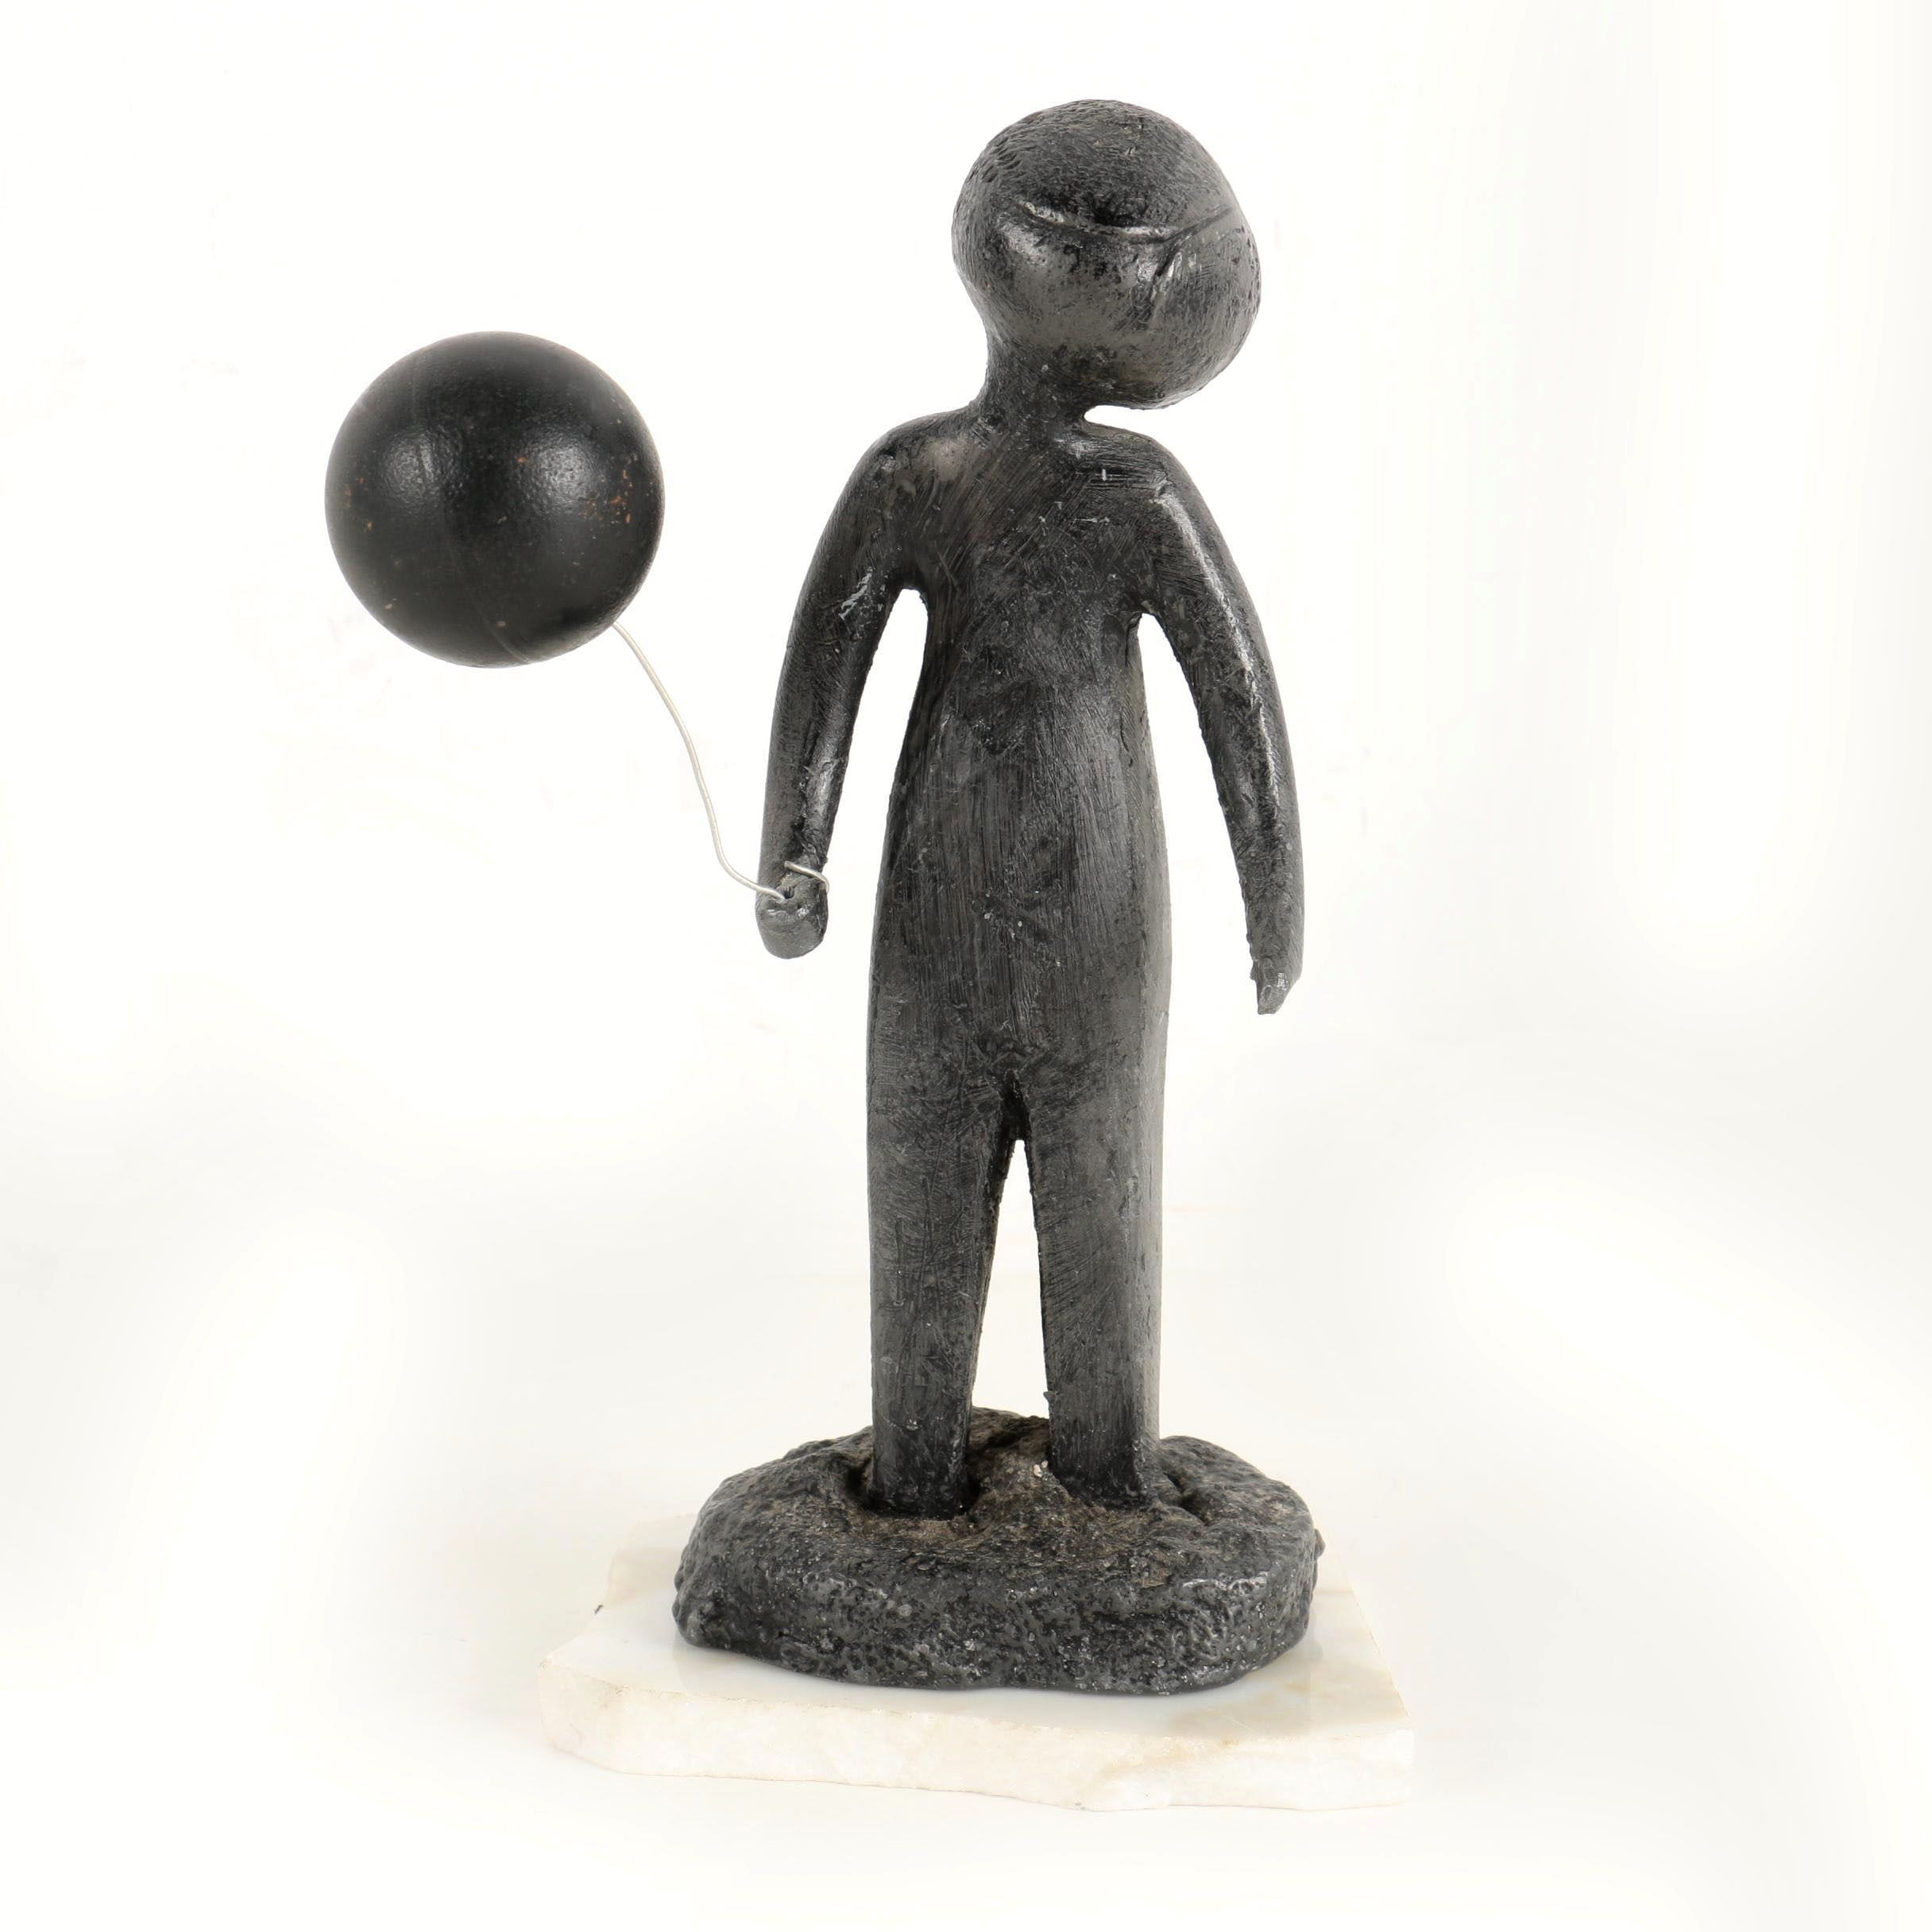 Lead Alloy Sculpture of Figure with Balloon